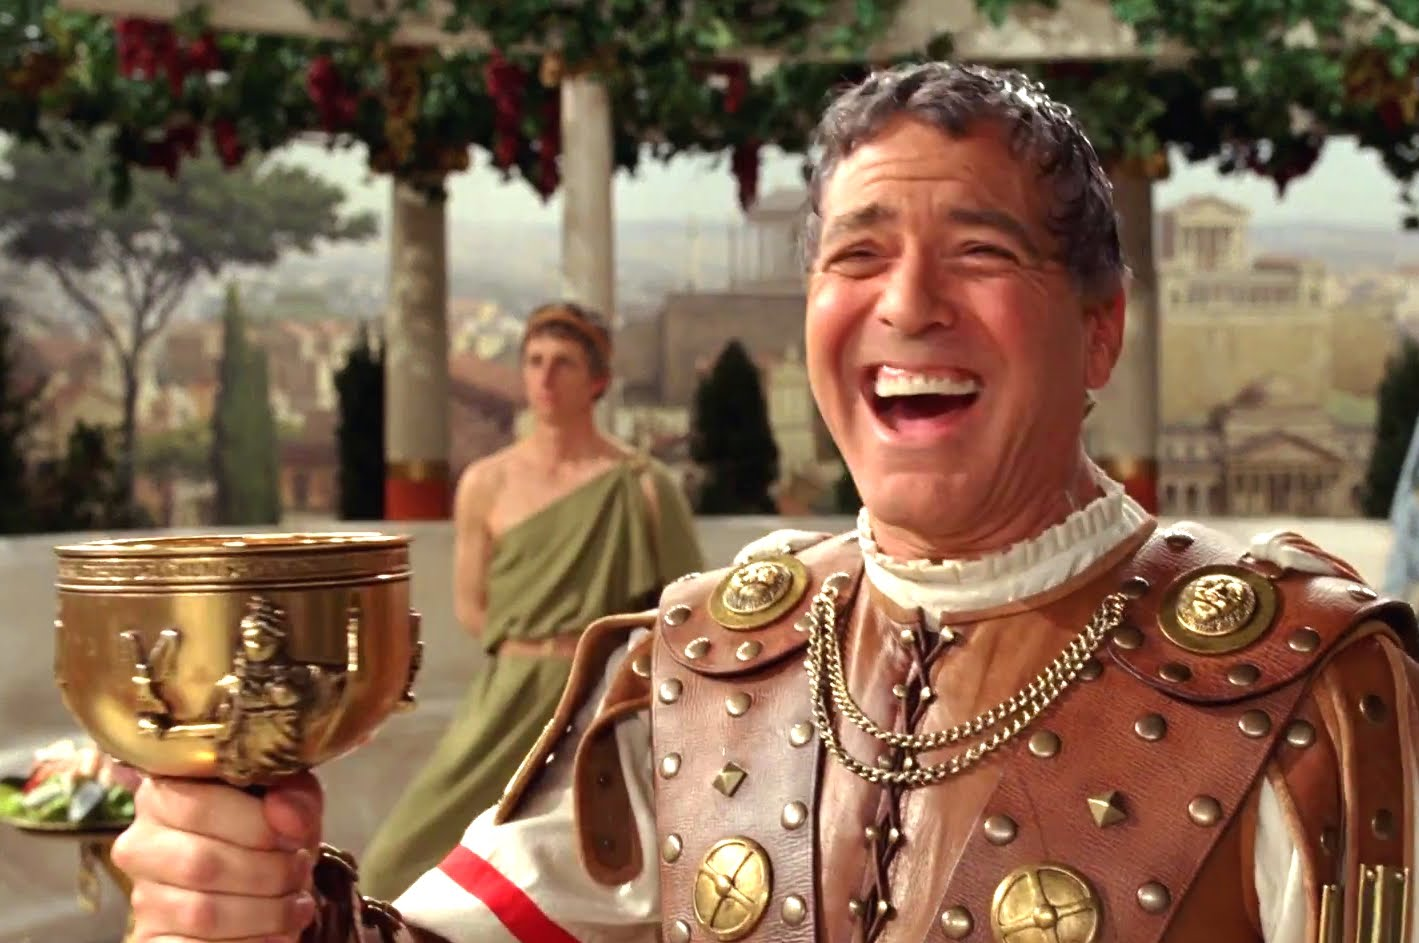 George Clooney in Hail Caesar! Image courtesy of Universal Pictures.